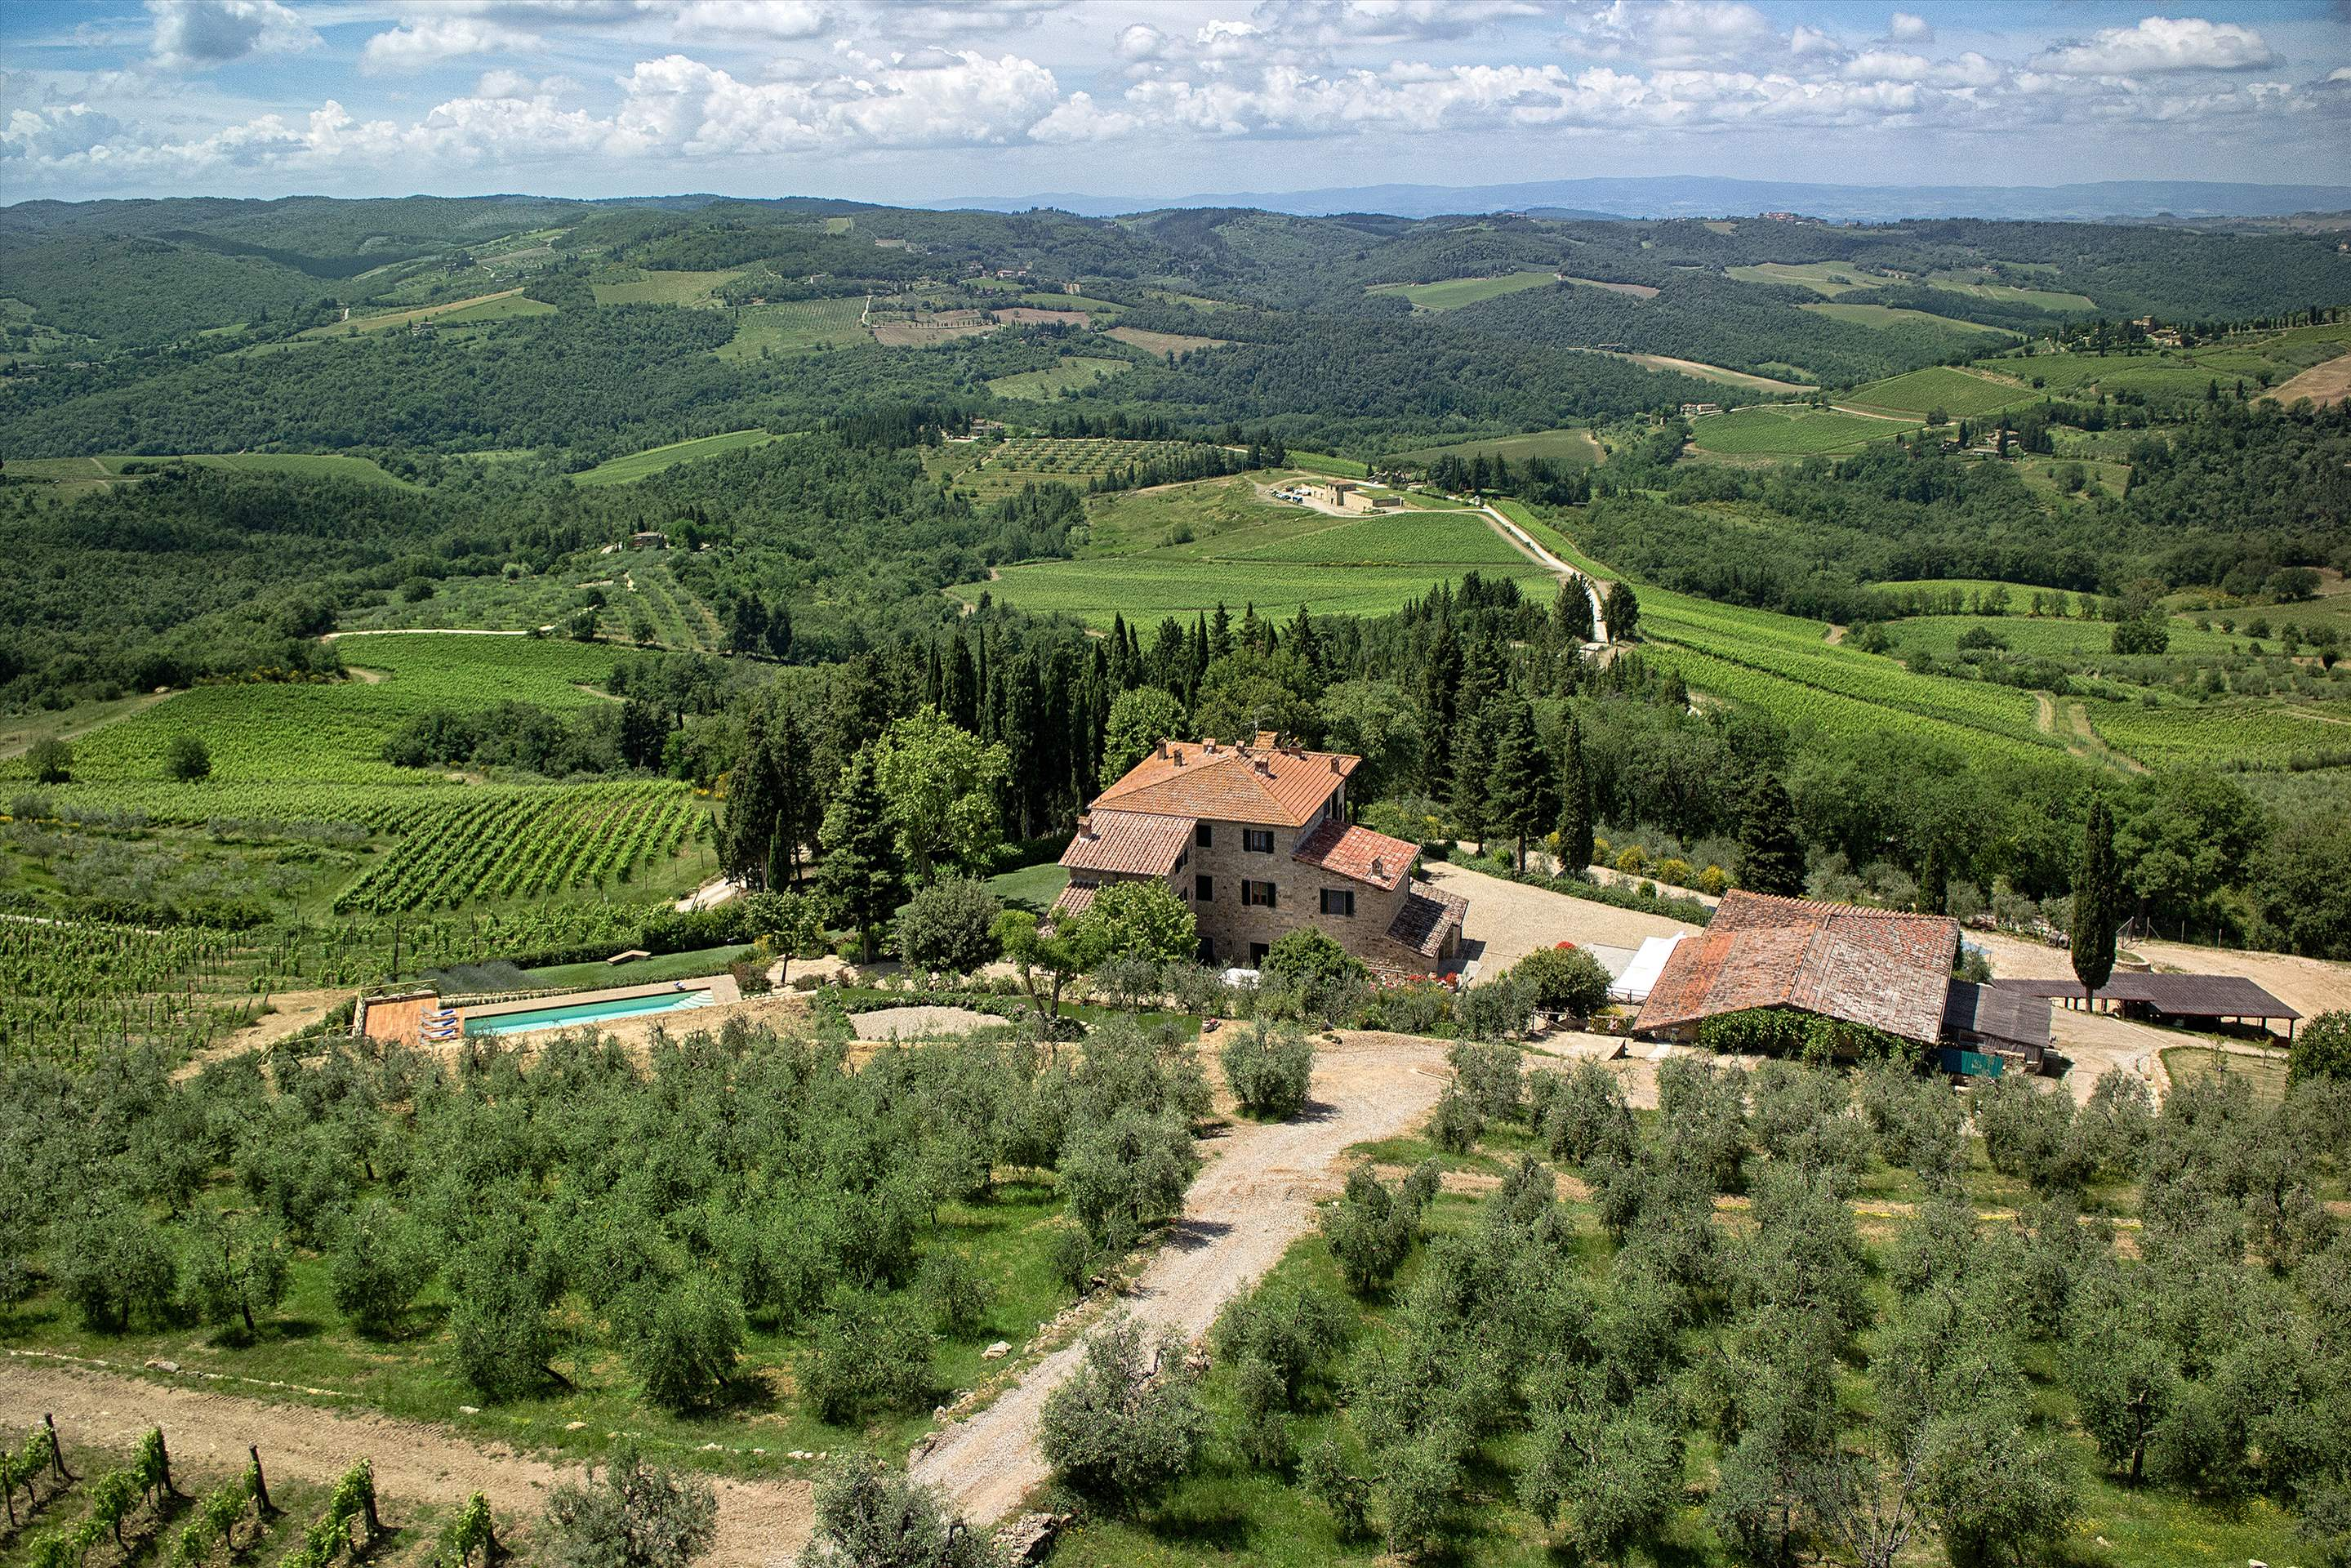 Villa La Valetta, 1 Bed Apt Uva, 1 bedroom villa in Chianti & Countryside, Tuscany Photo #11